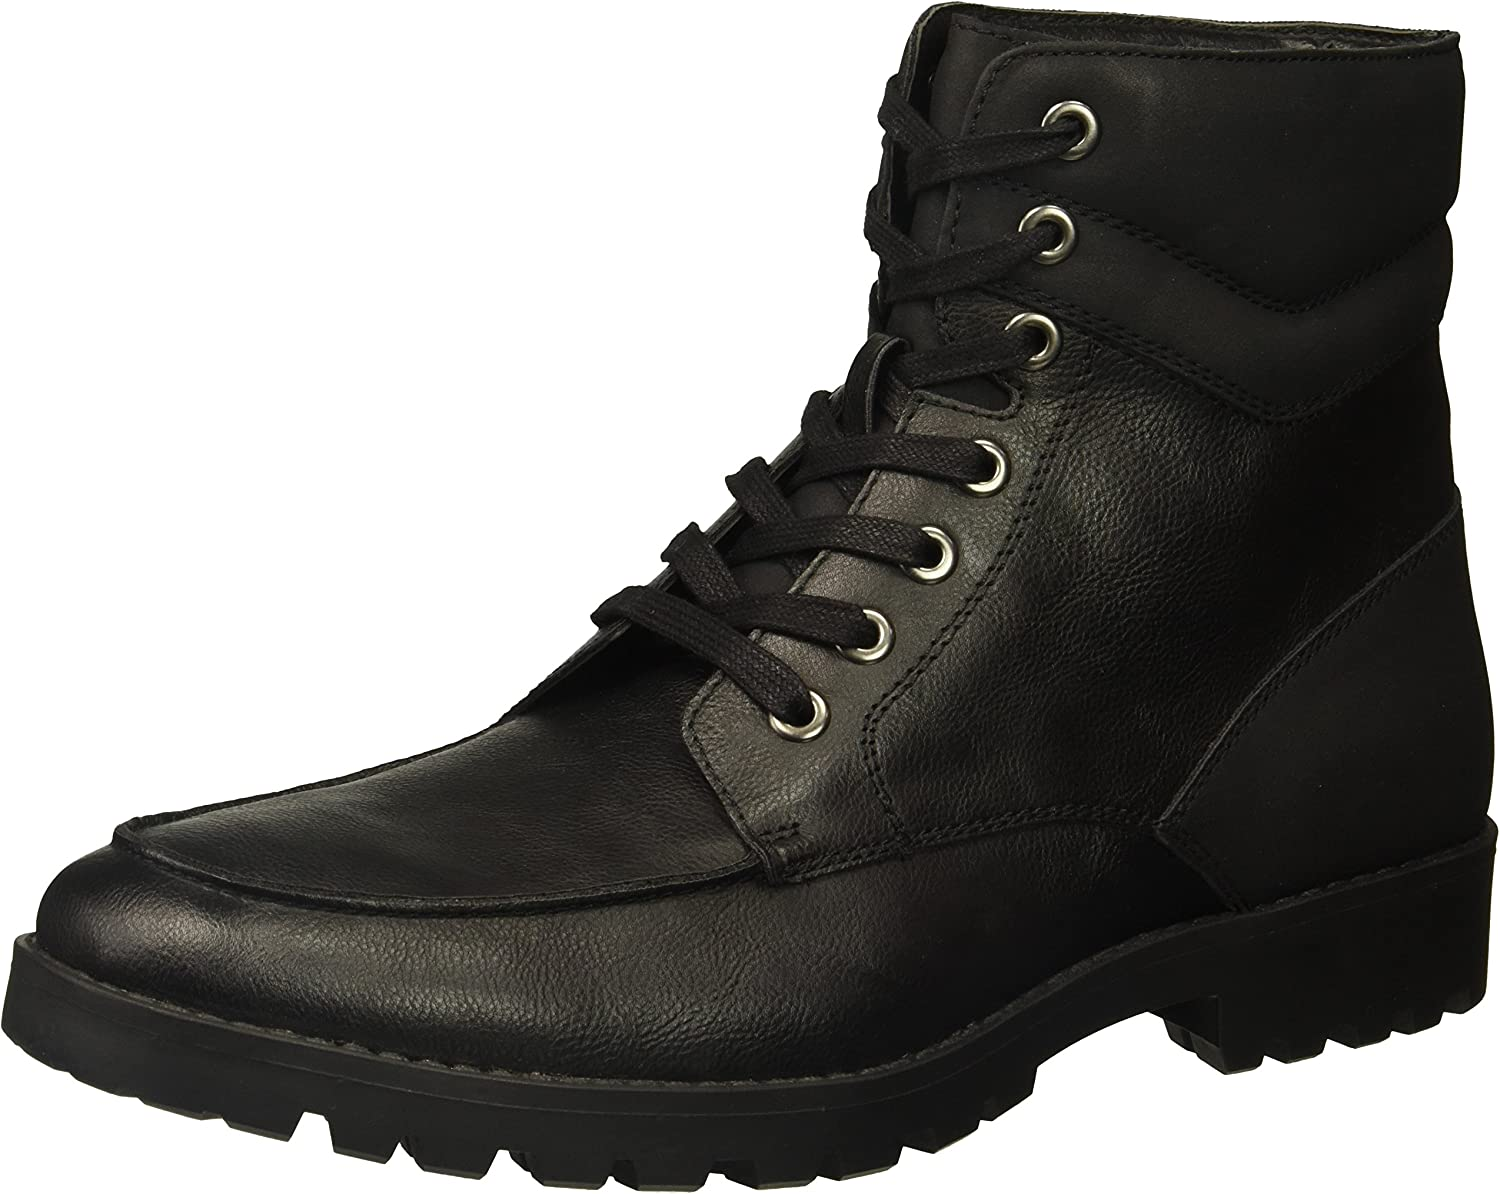 Unlisted by Kenneth Cole Men's Upper Cut Stiefel, schwarz, 11 M US